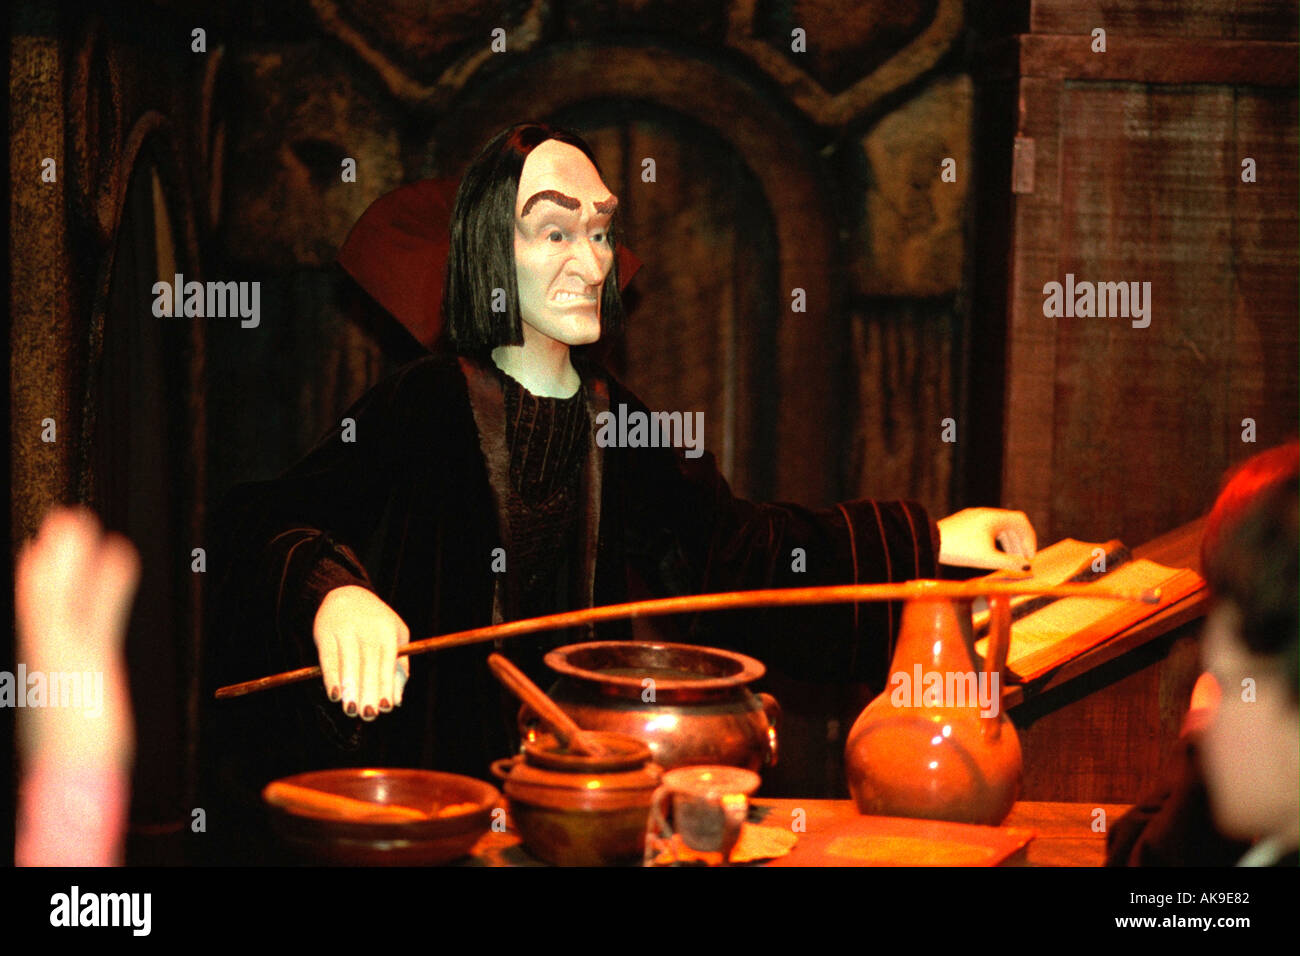 Snape, the potions master. Marshal Fields Holiday Display Titled: Have a Harry Potter Christmas. Minneapolis Minnesota - Stock Image